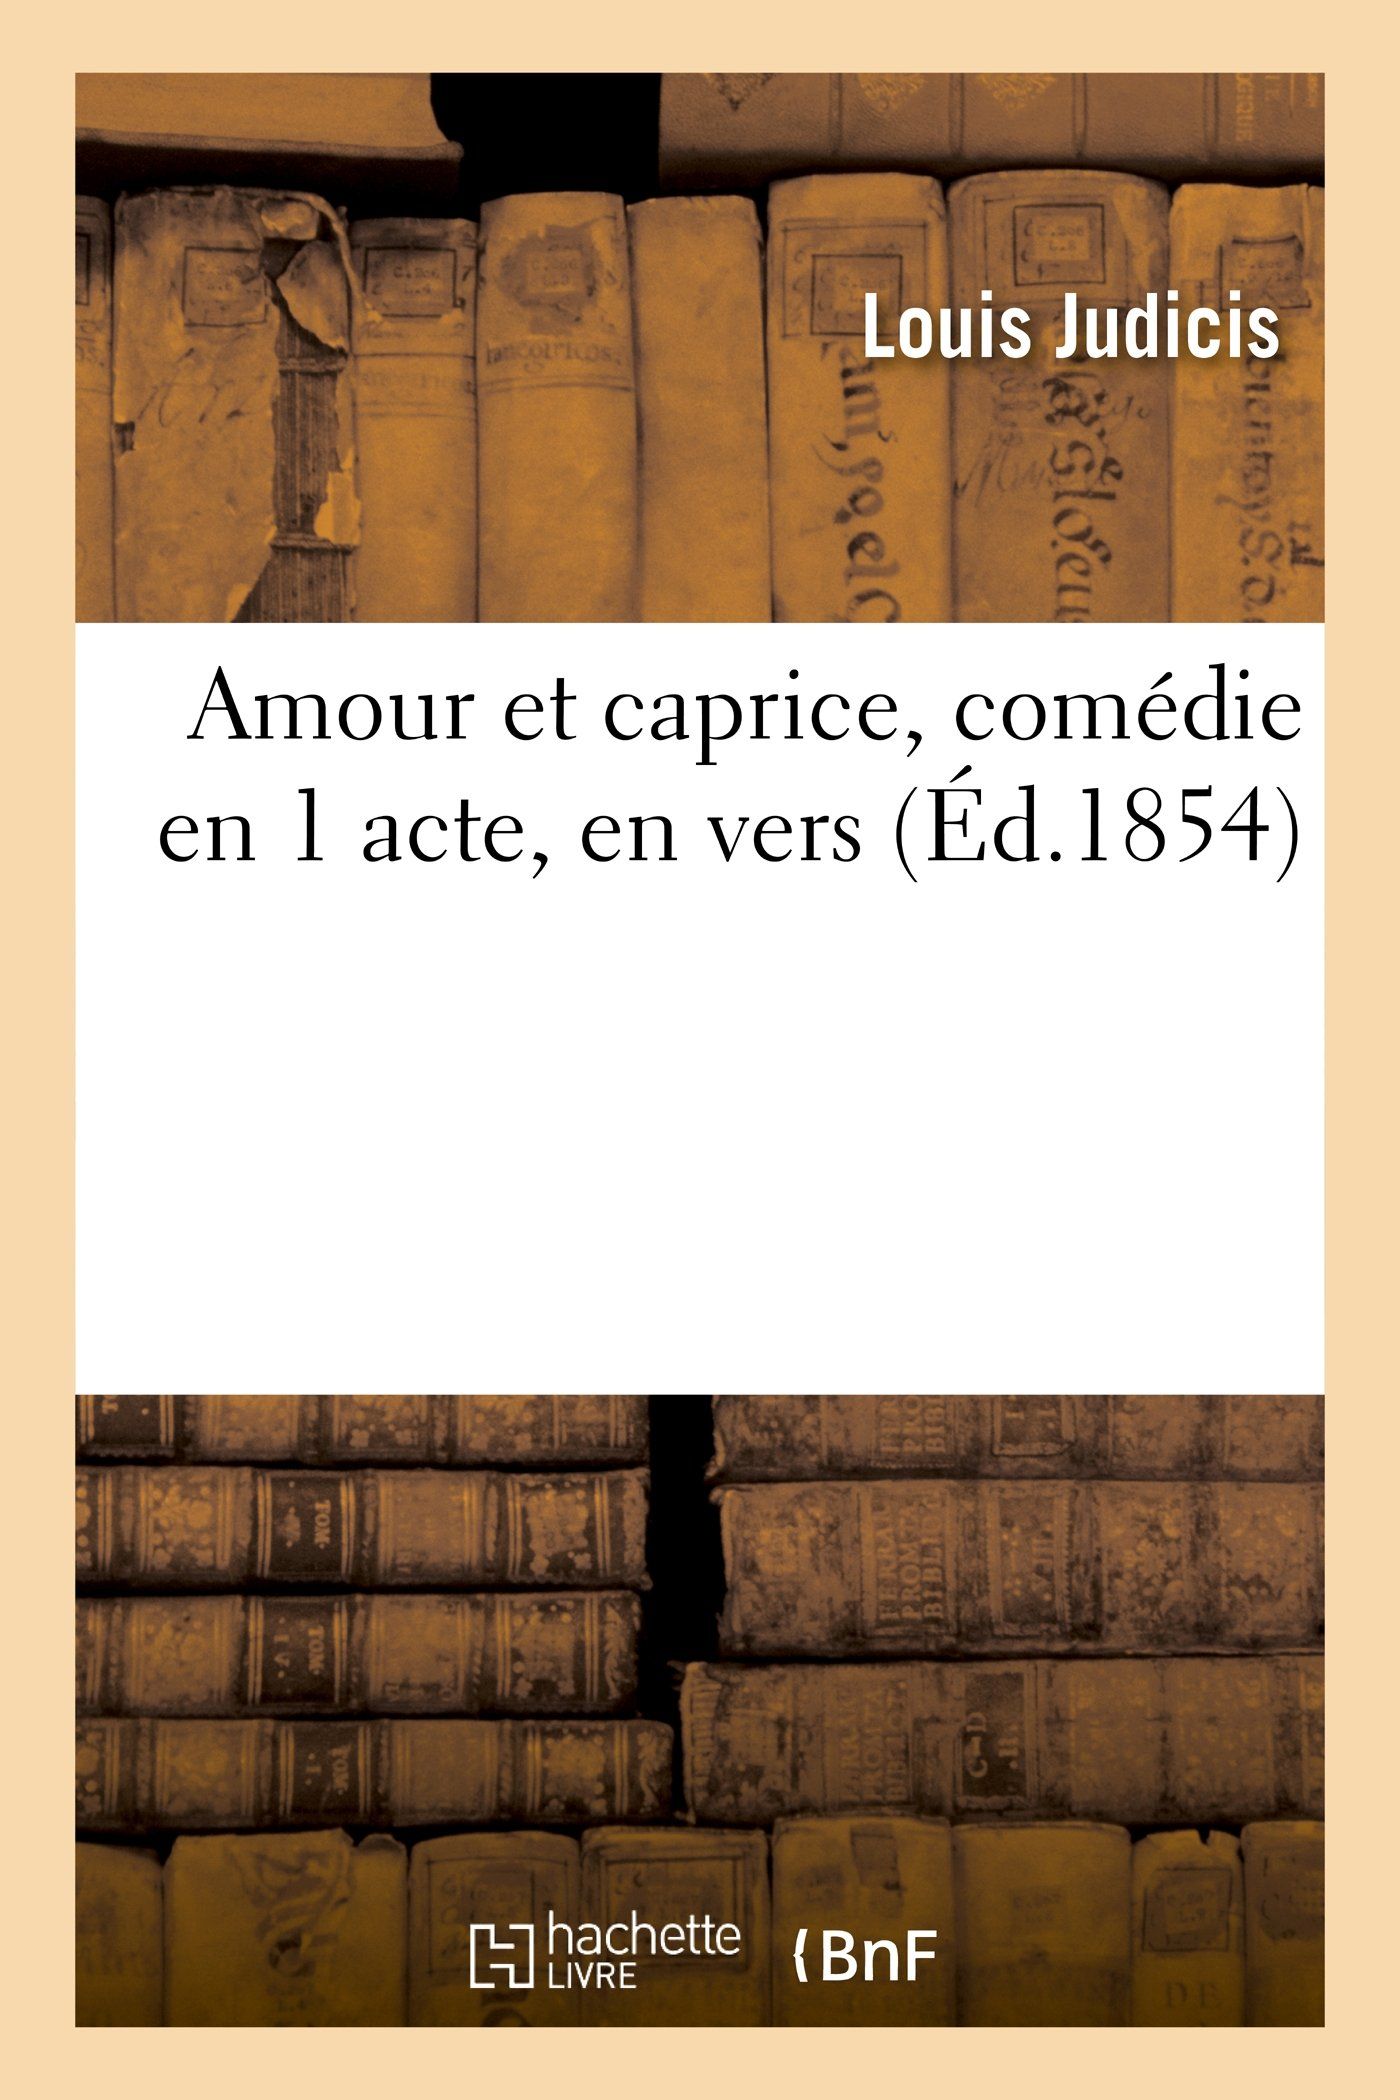 Amour Et Caprice, Comedie En 1 Acte, En Vers (Litterature) (French Edition) ebook